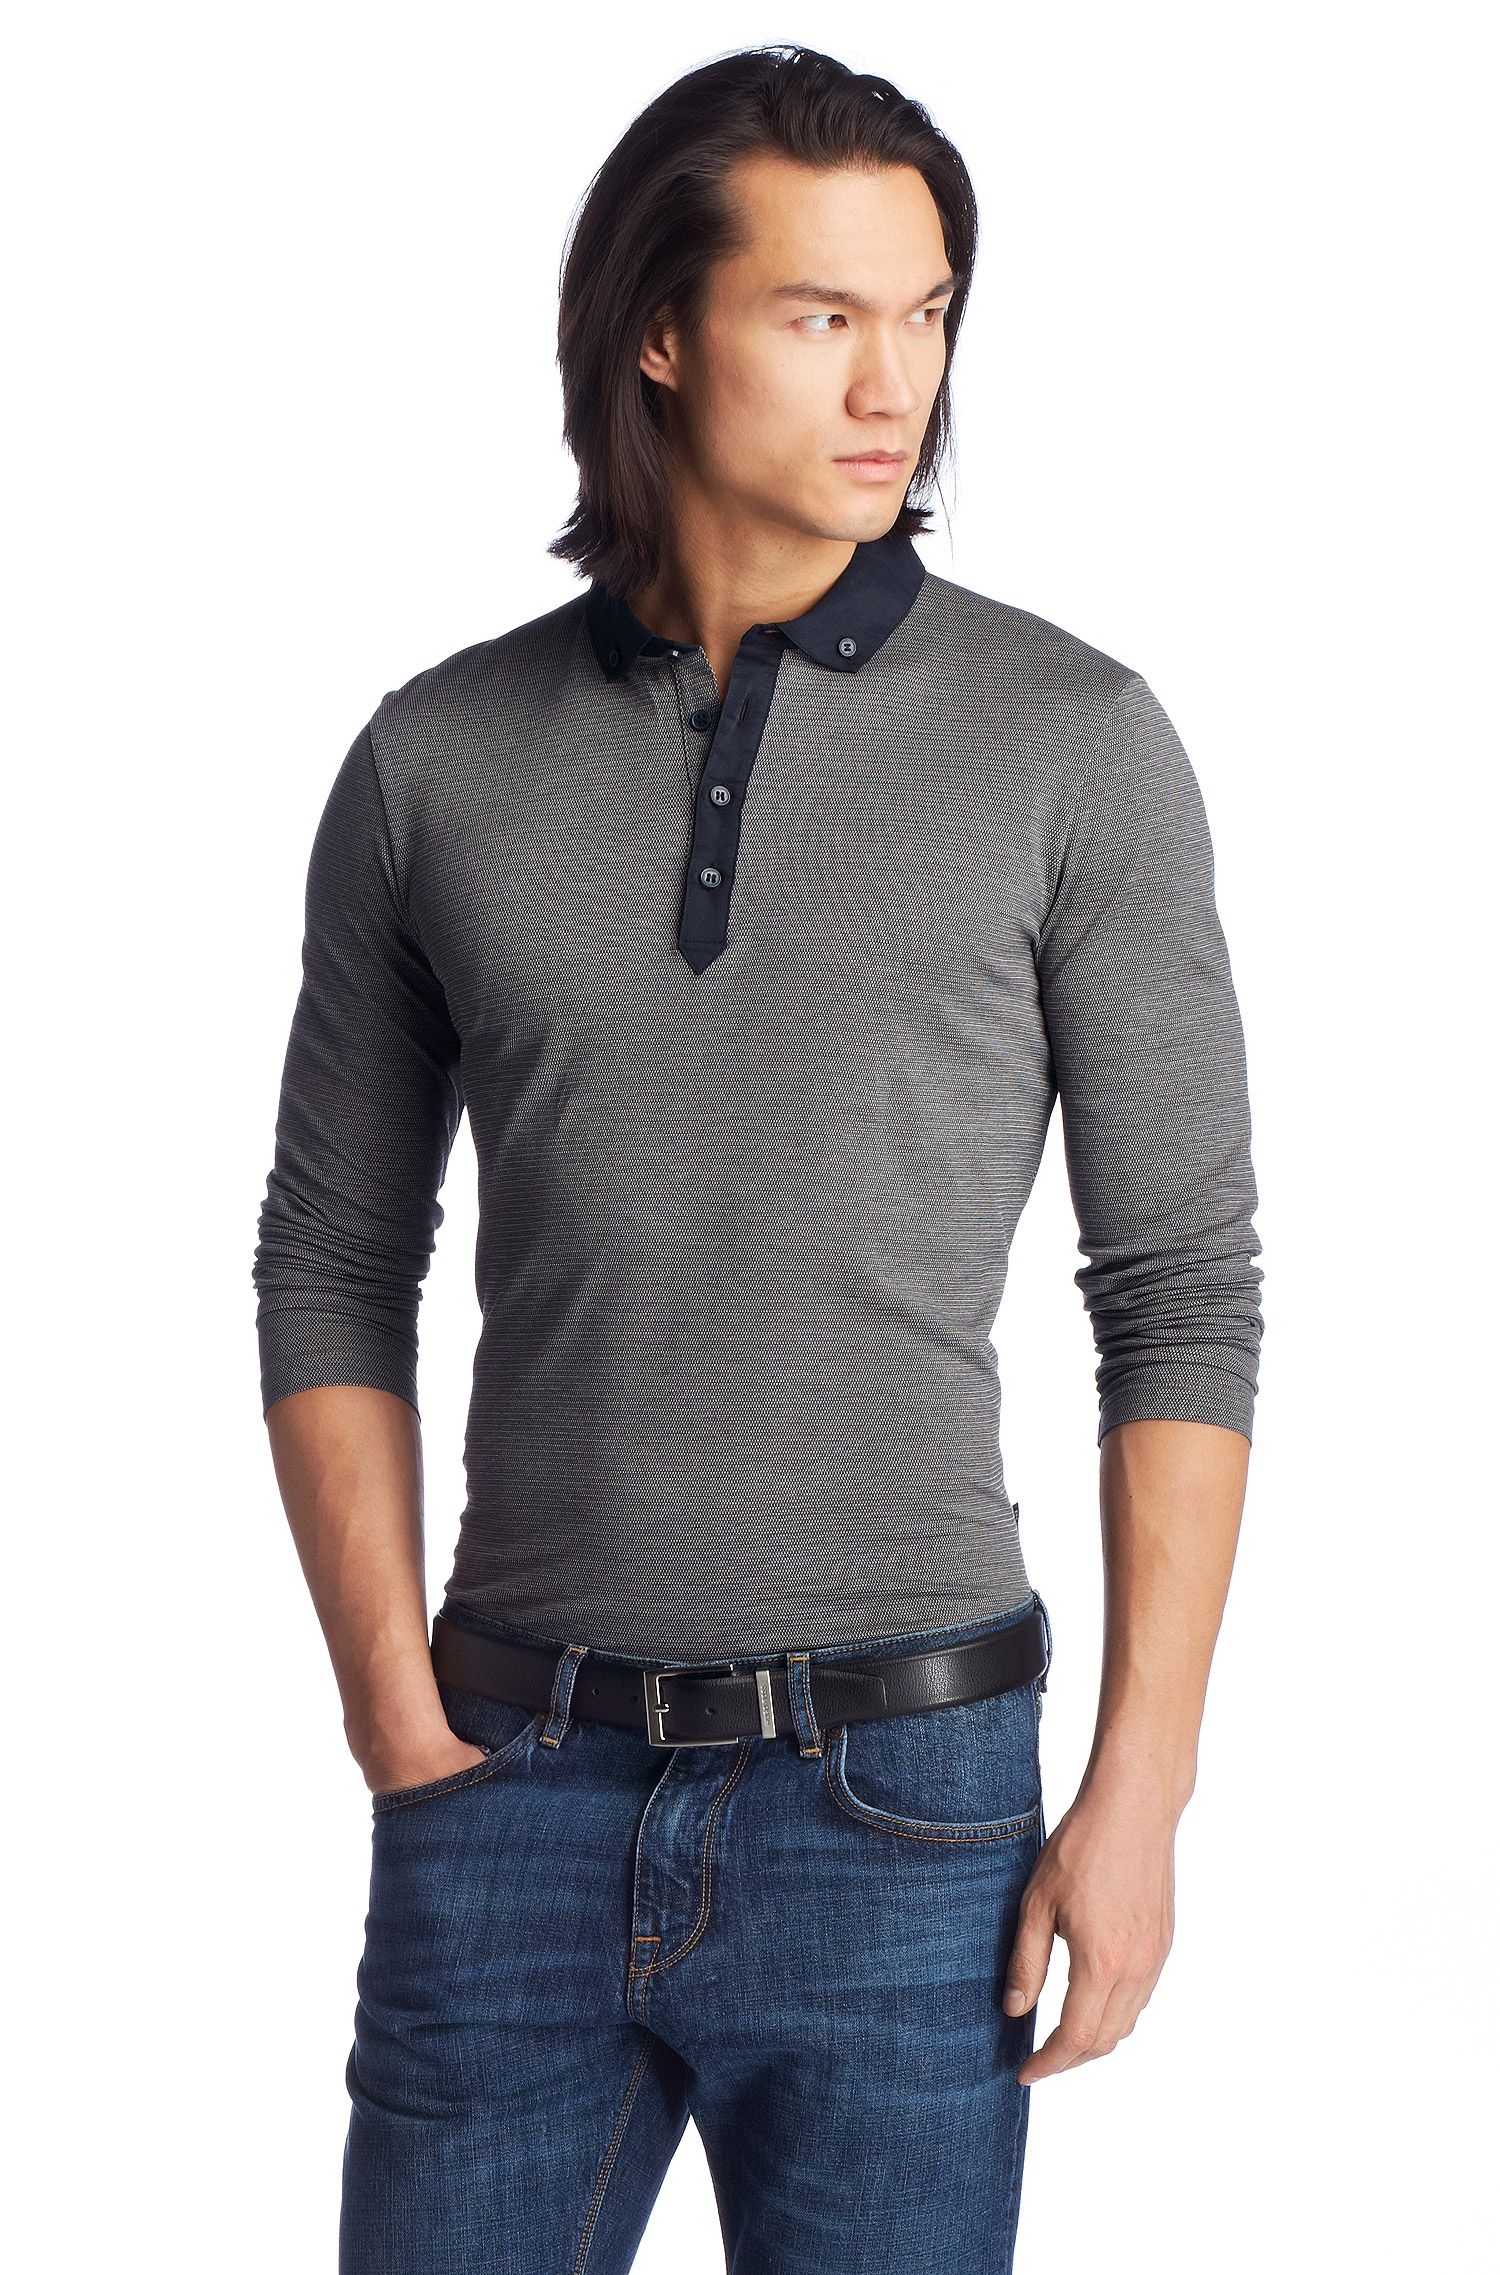 Polo à manches longues coupe Slim Fit « Sedilo 06 » en coton